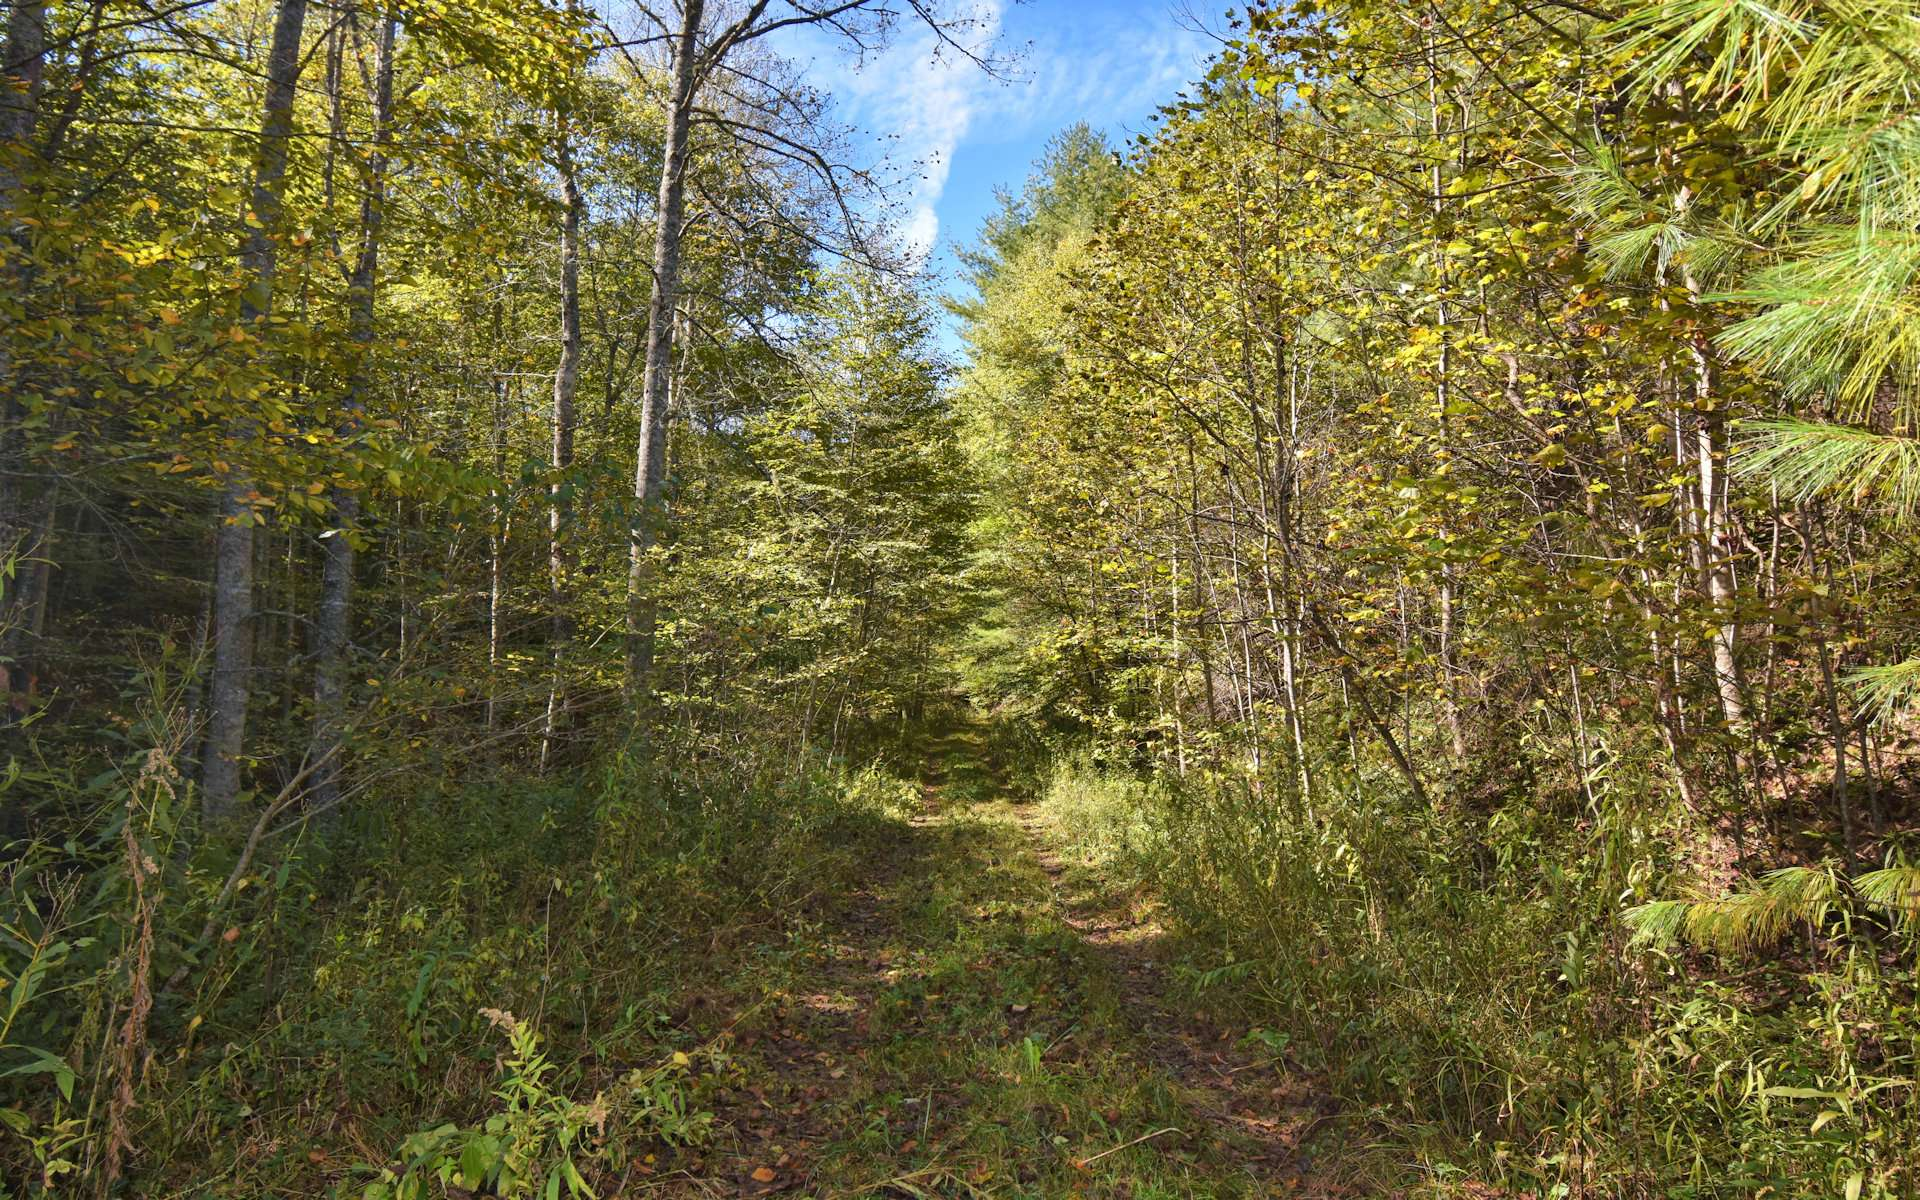 An old farm road directs you through a diverse mixture of native hardwoods, evergreens and mountain foliage to reach multiple potential building sites.